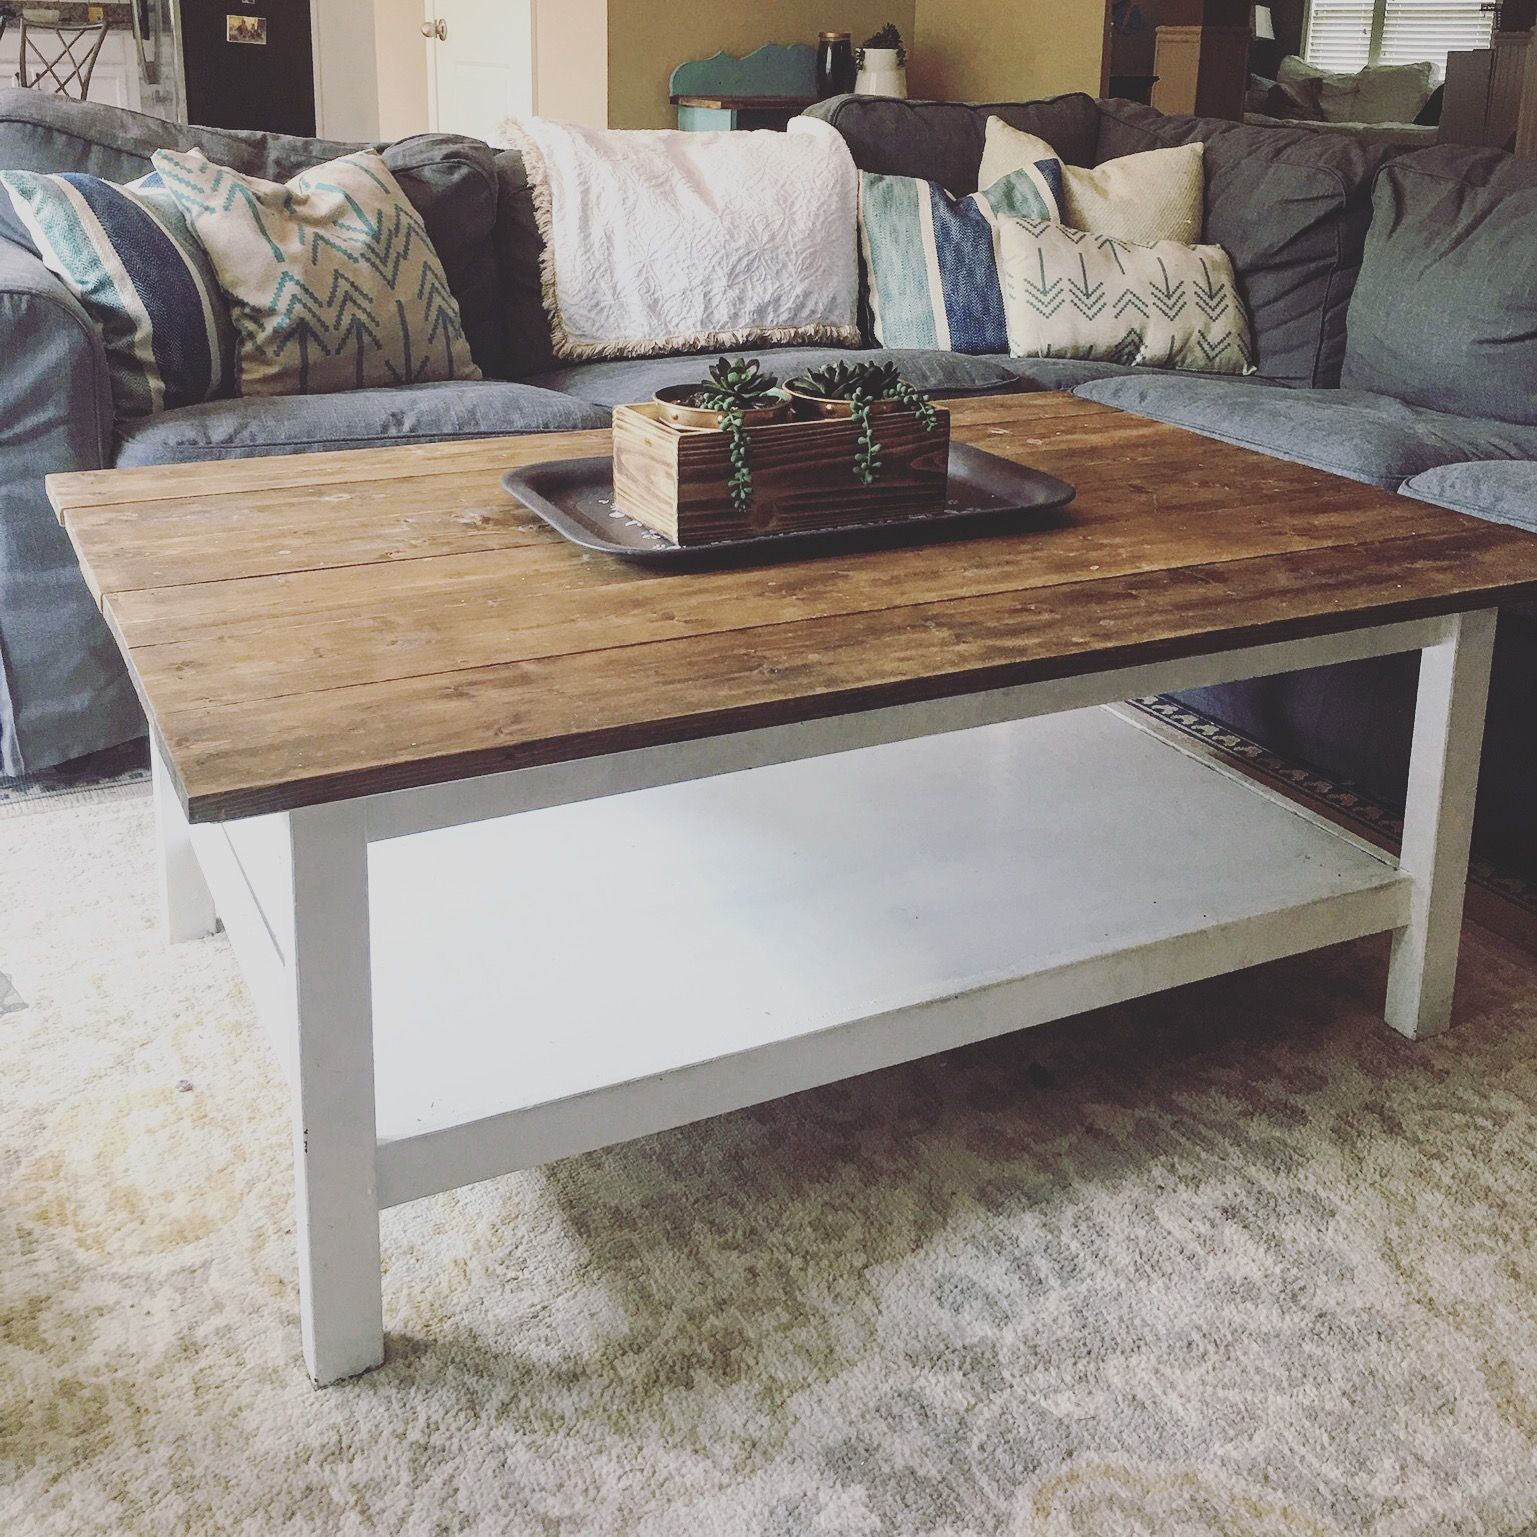 Our Ikea Coffee Table Was About One Week Away From Being